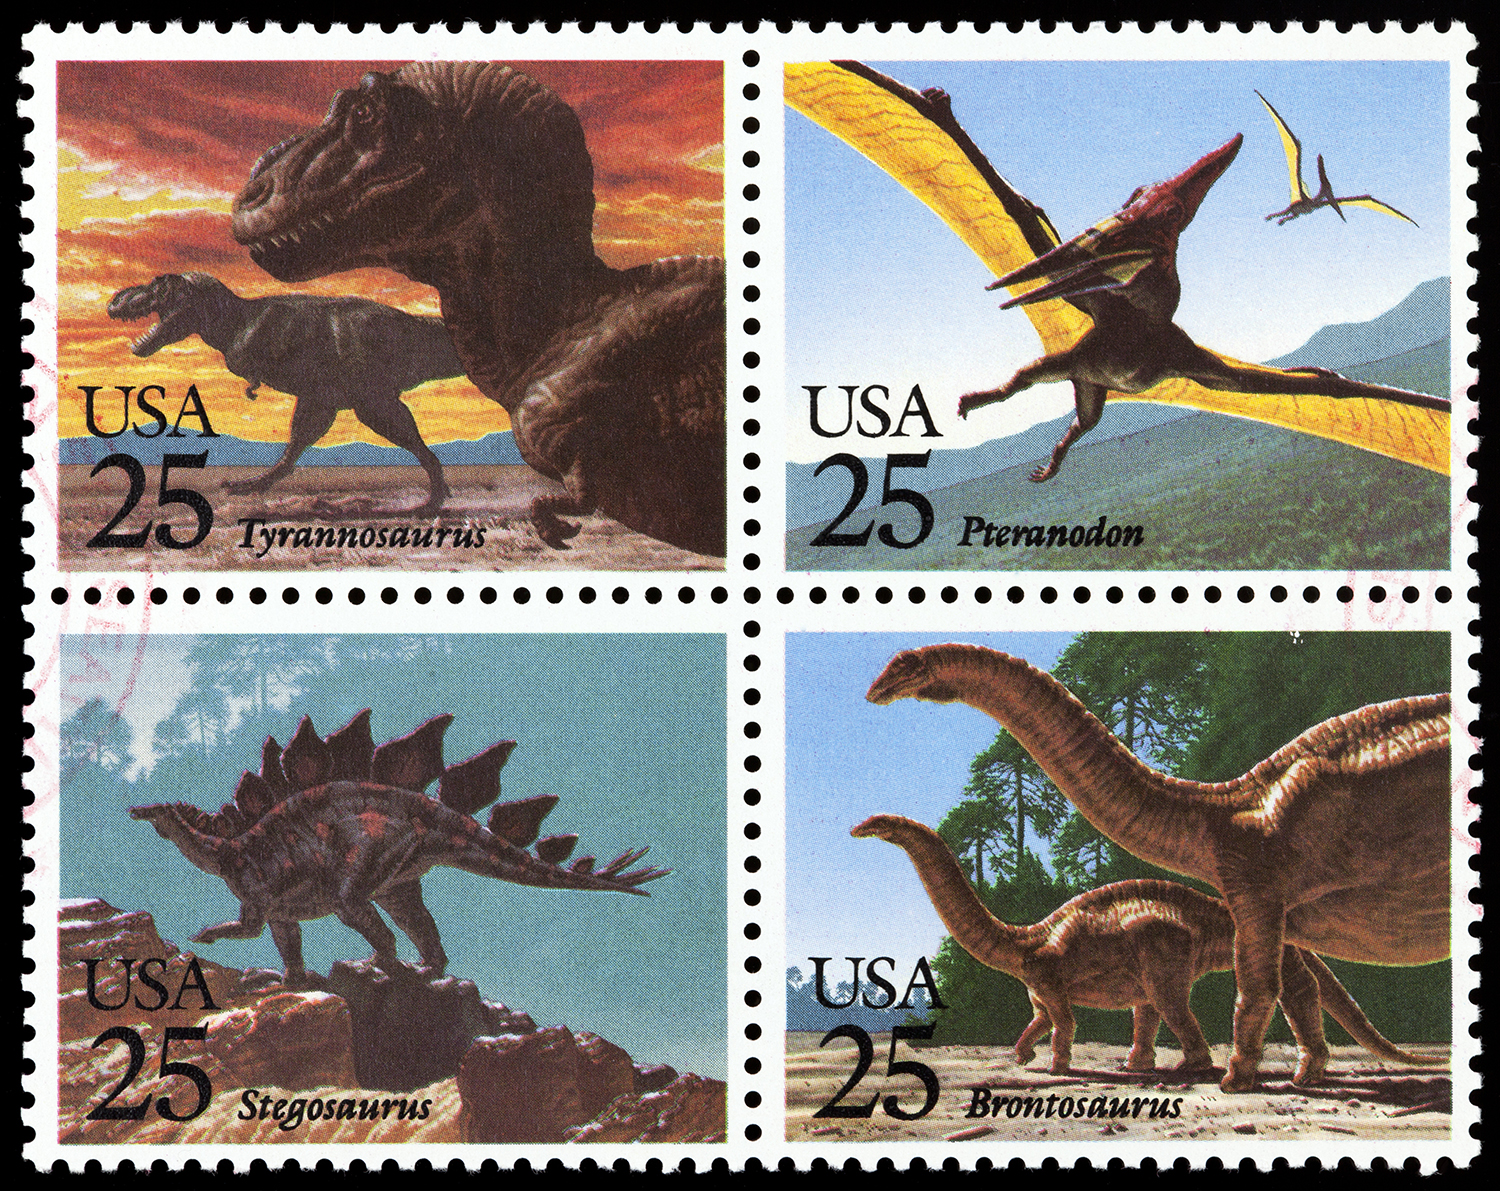 1989 Dinosaur stamps. (Credit: SunChan/Getty Images)